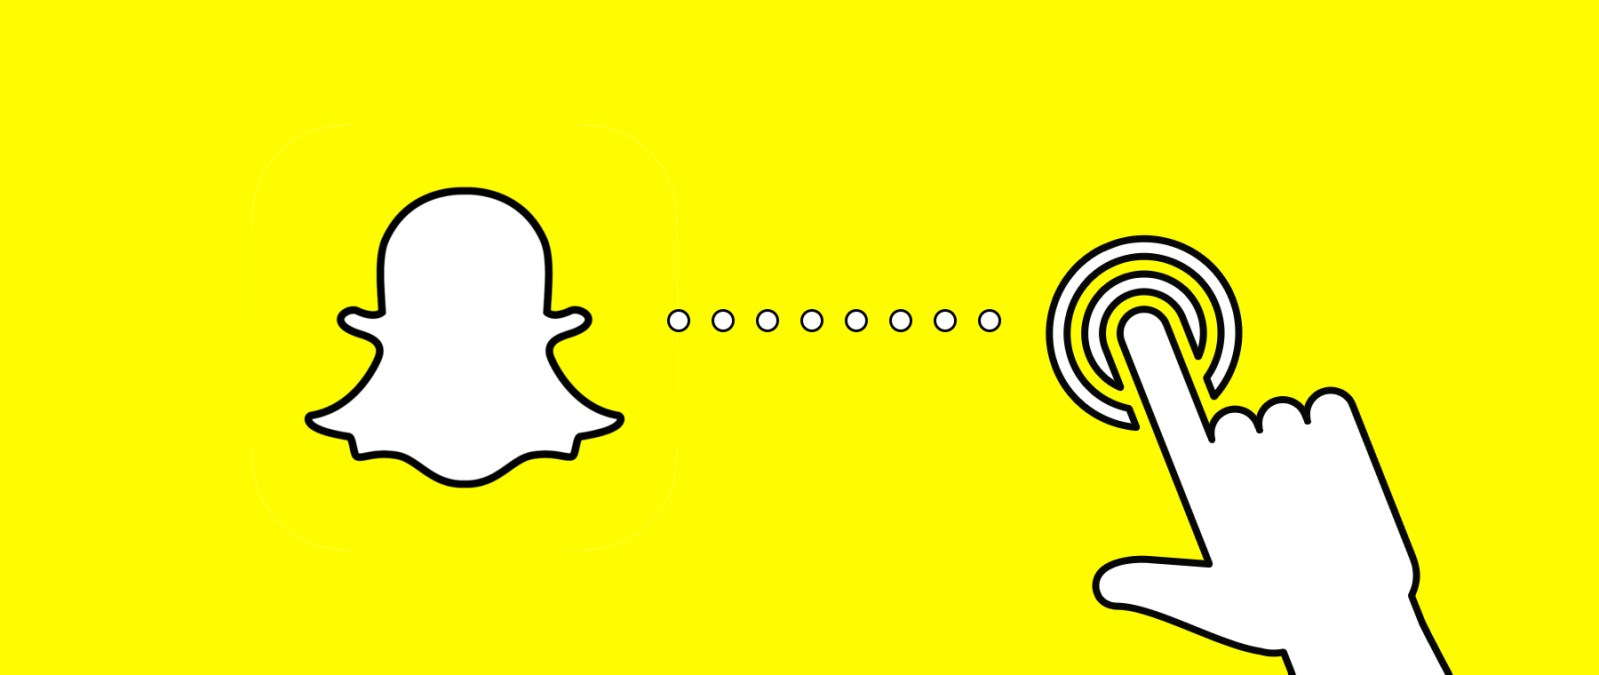 Calling all IOS users! Get ready to play with Snapchat's fantastic new feature